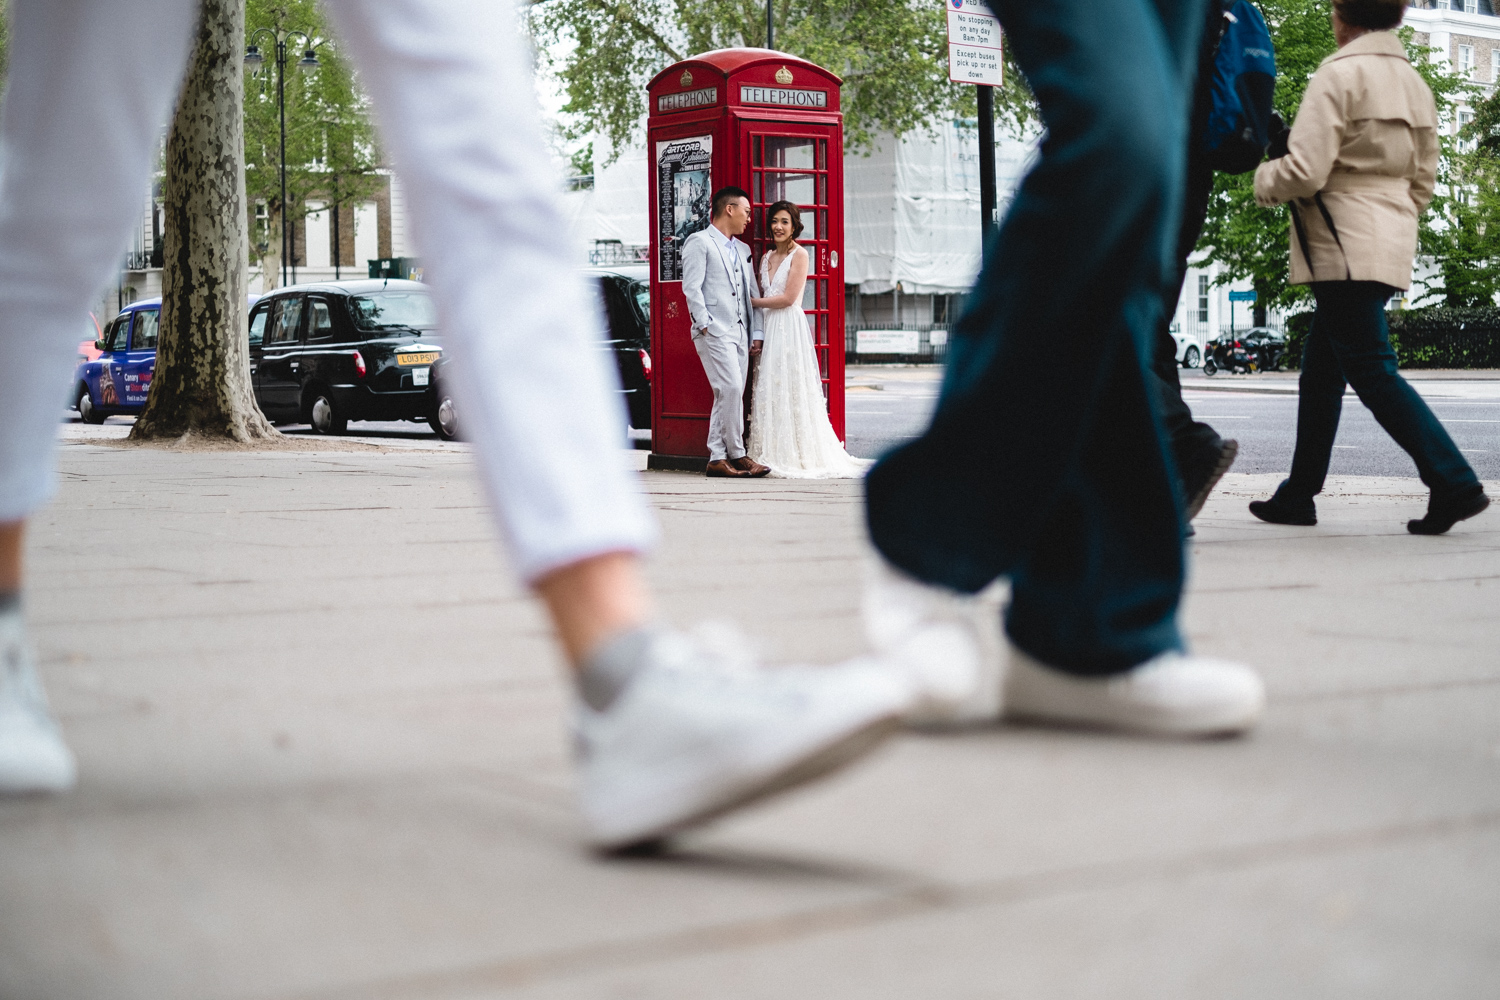 Copy of London pre-wedding photos - street photography style